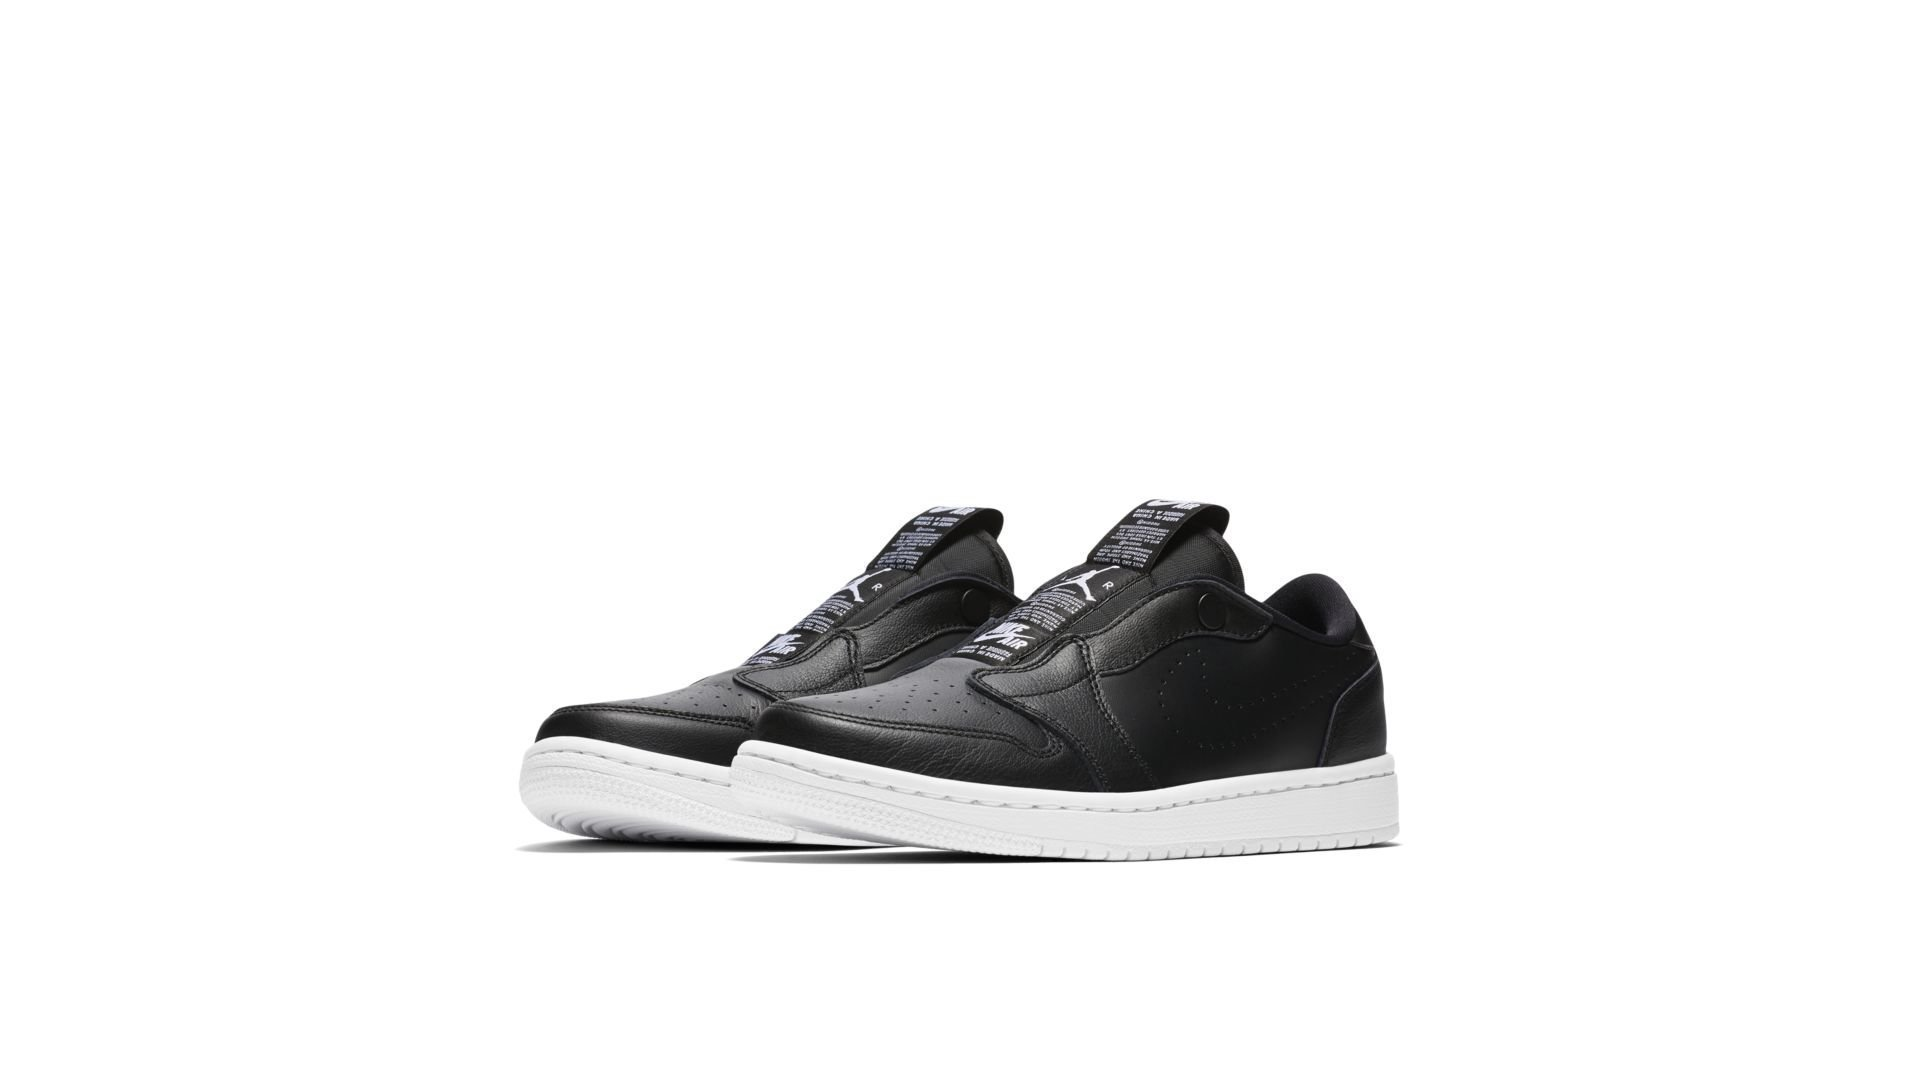 Jordan 1 Retro Low Slip Black White (W) (AV3918-001)